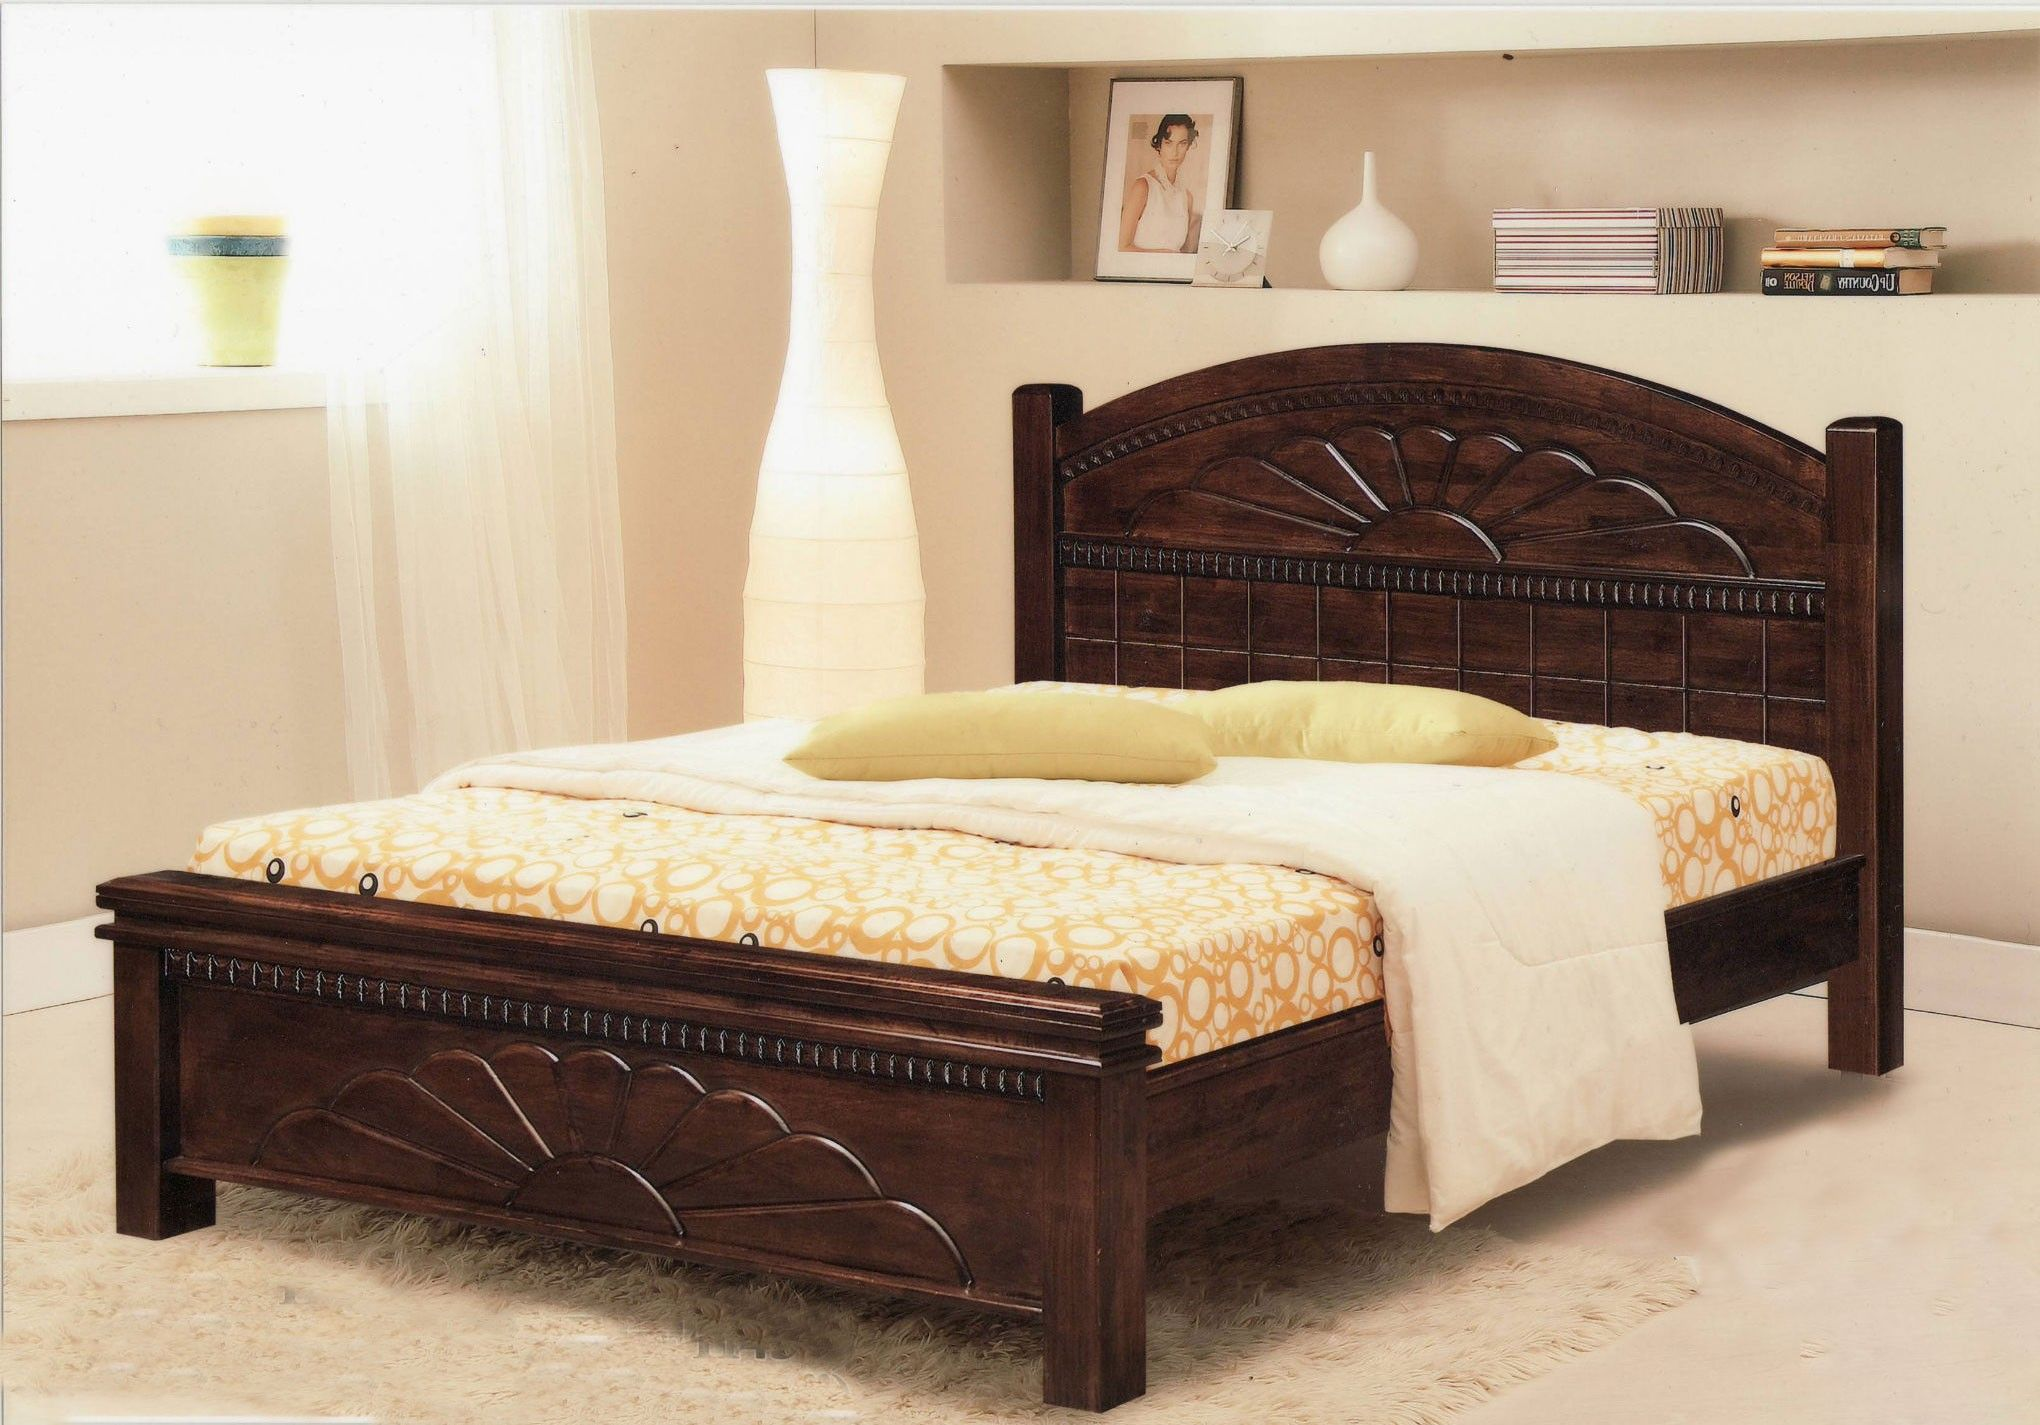 a queen wooden bed my dream bed i wish to get one really soon - Wood Bed Frames Queen